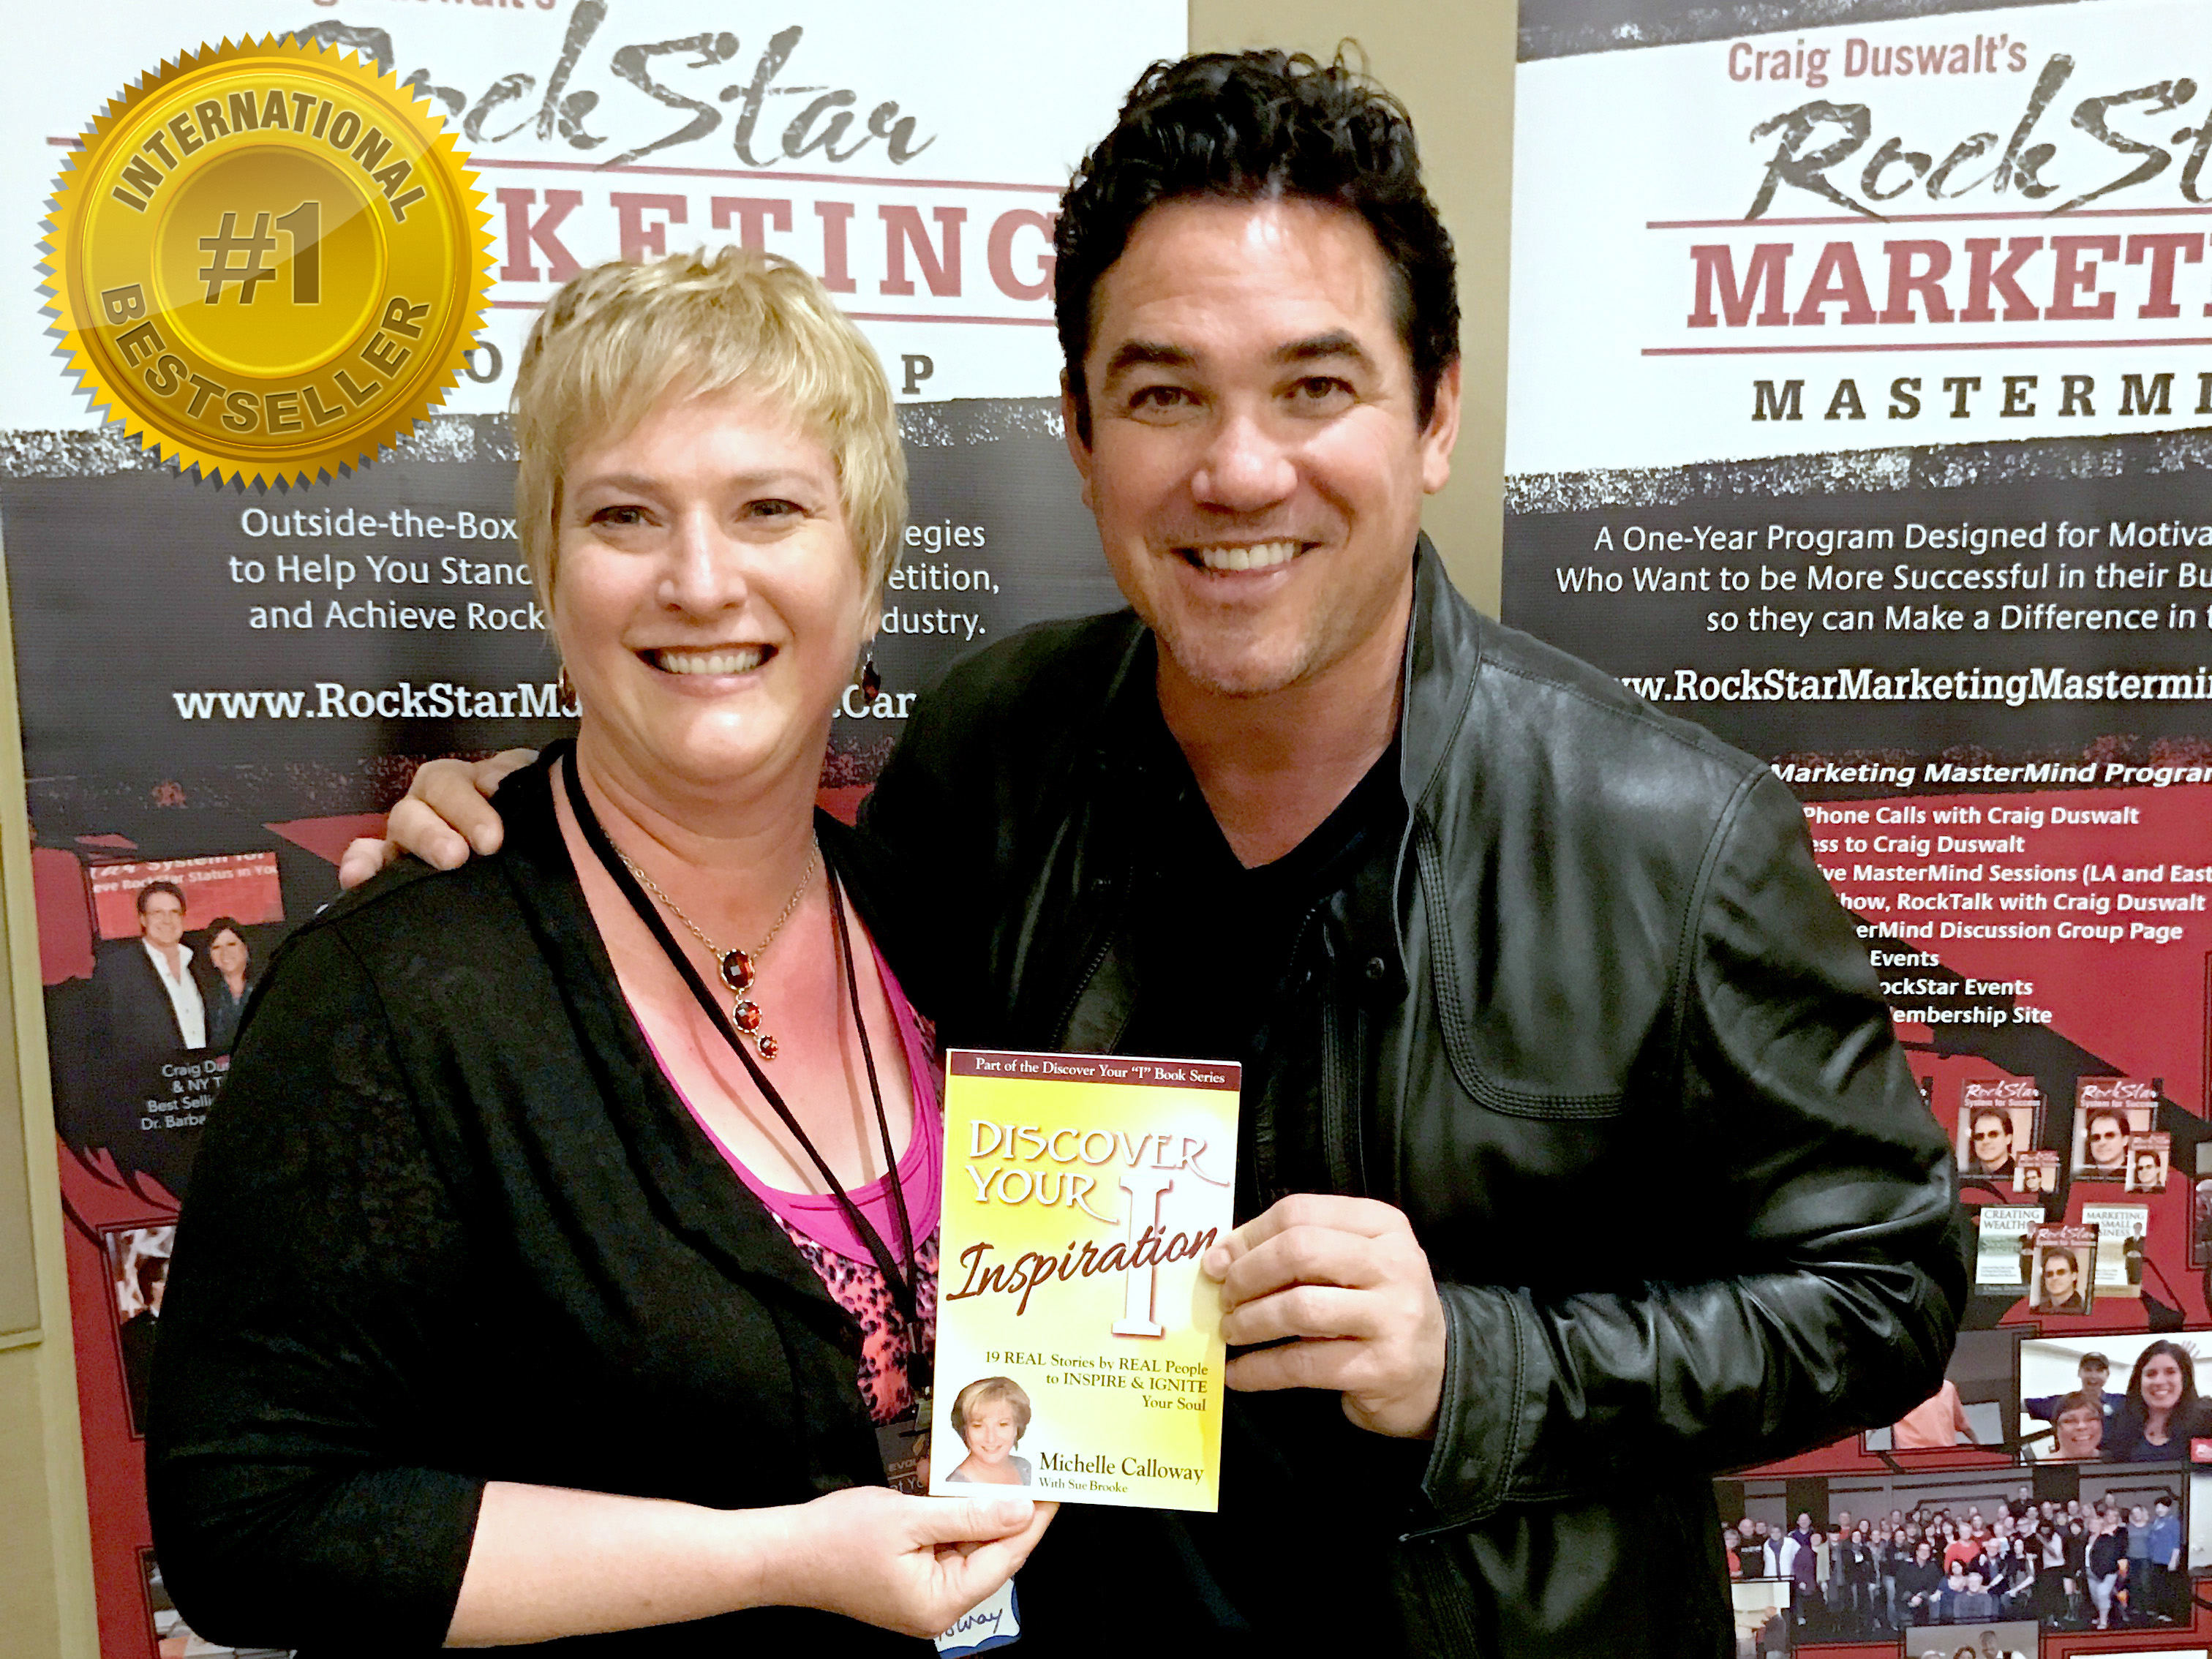 Michelle Calloway pic w Dean Cain promoting her book Discover Your Inspiration